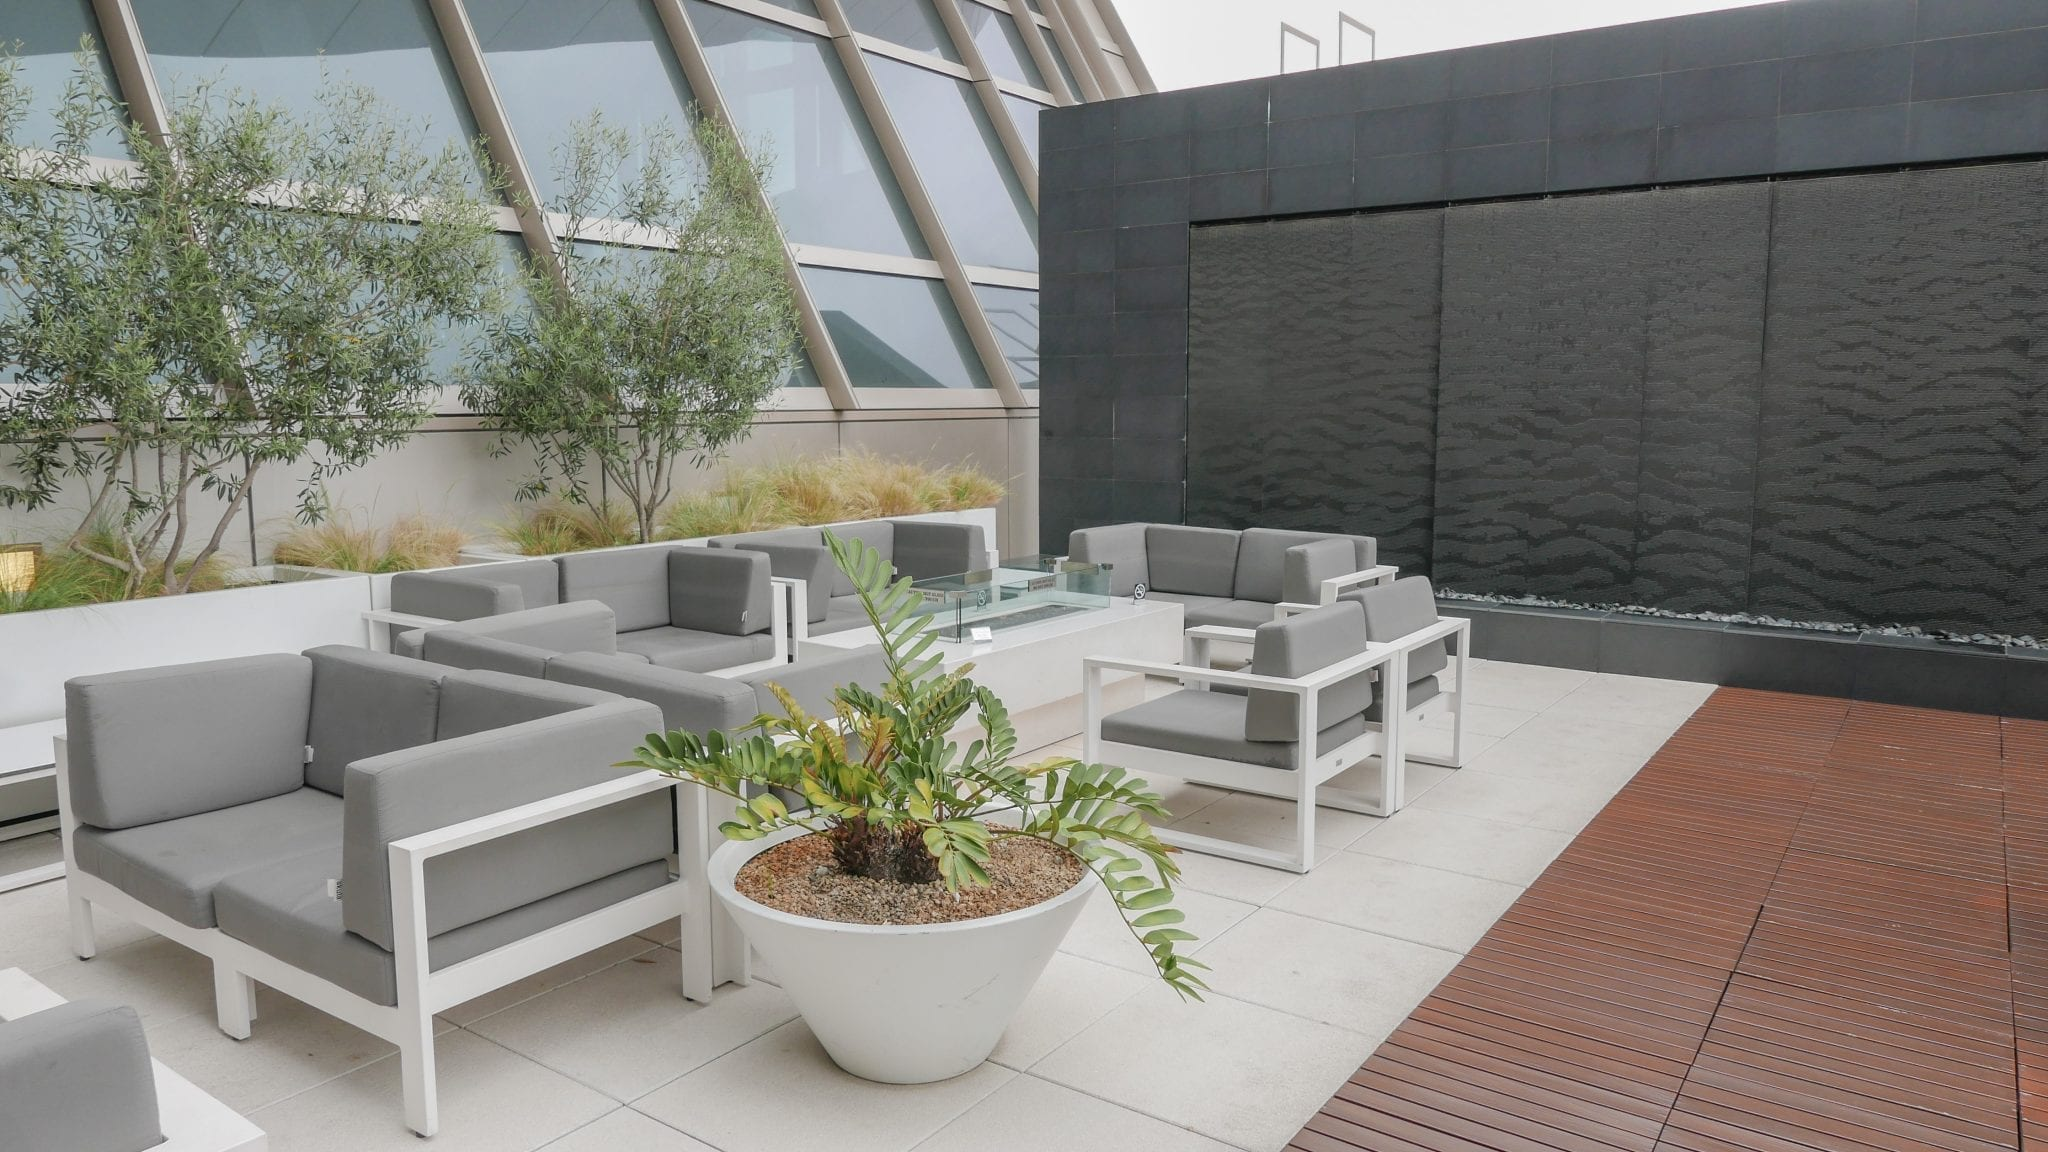 star alliance lounge LAX 21 - REVIEW - Star Alliance Lounge, LAX - TBIT